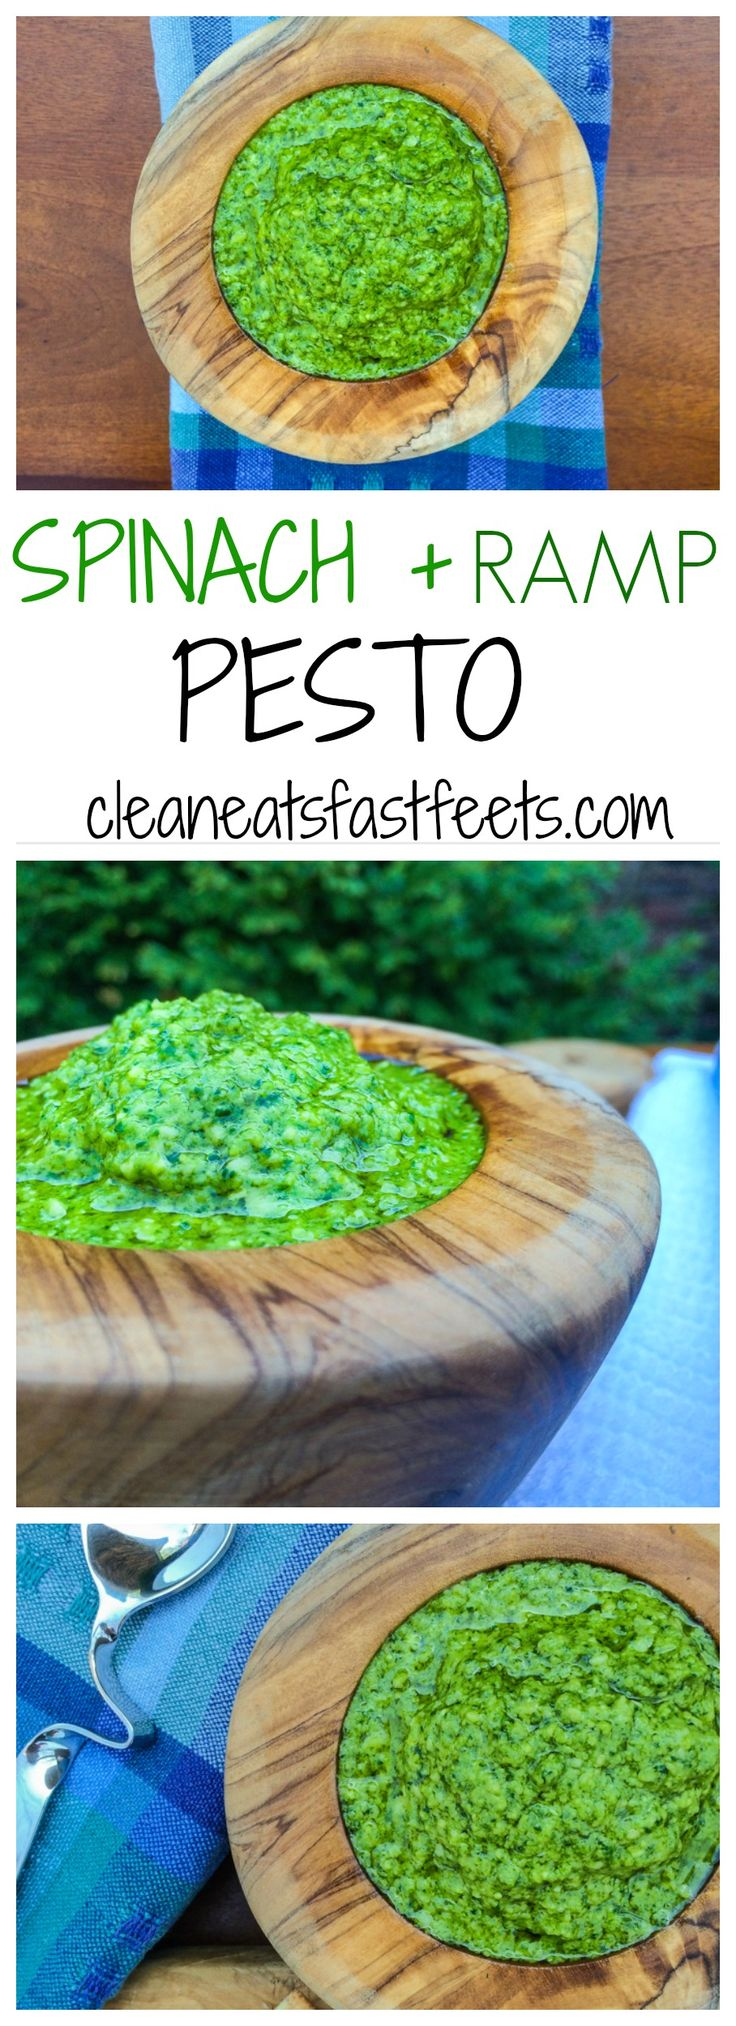 Spinach Ramp Pesto. A tasty pesto recipe using seasonal ramps and fresh spinach, which will tickle your taste bud and dance on your tongue.